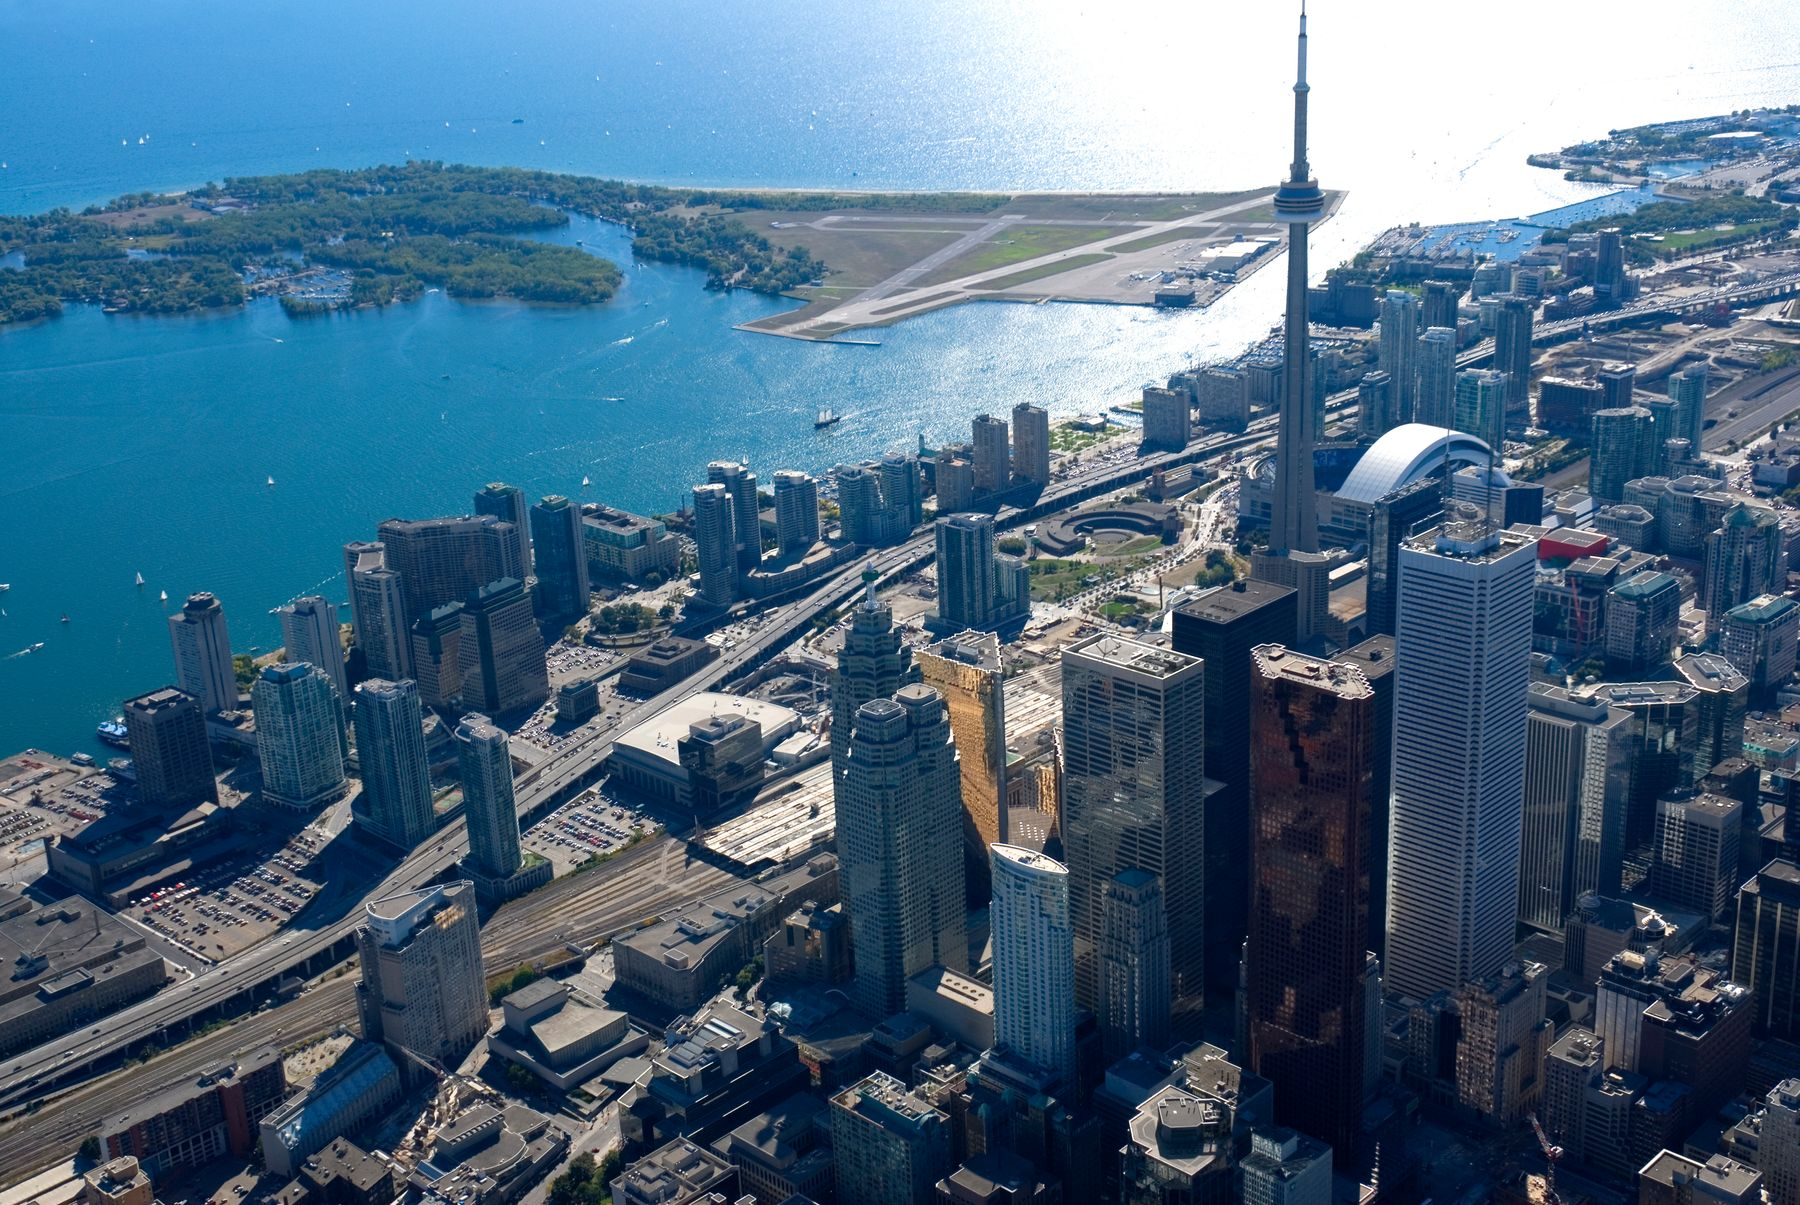 aerial view of Toronto during the day